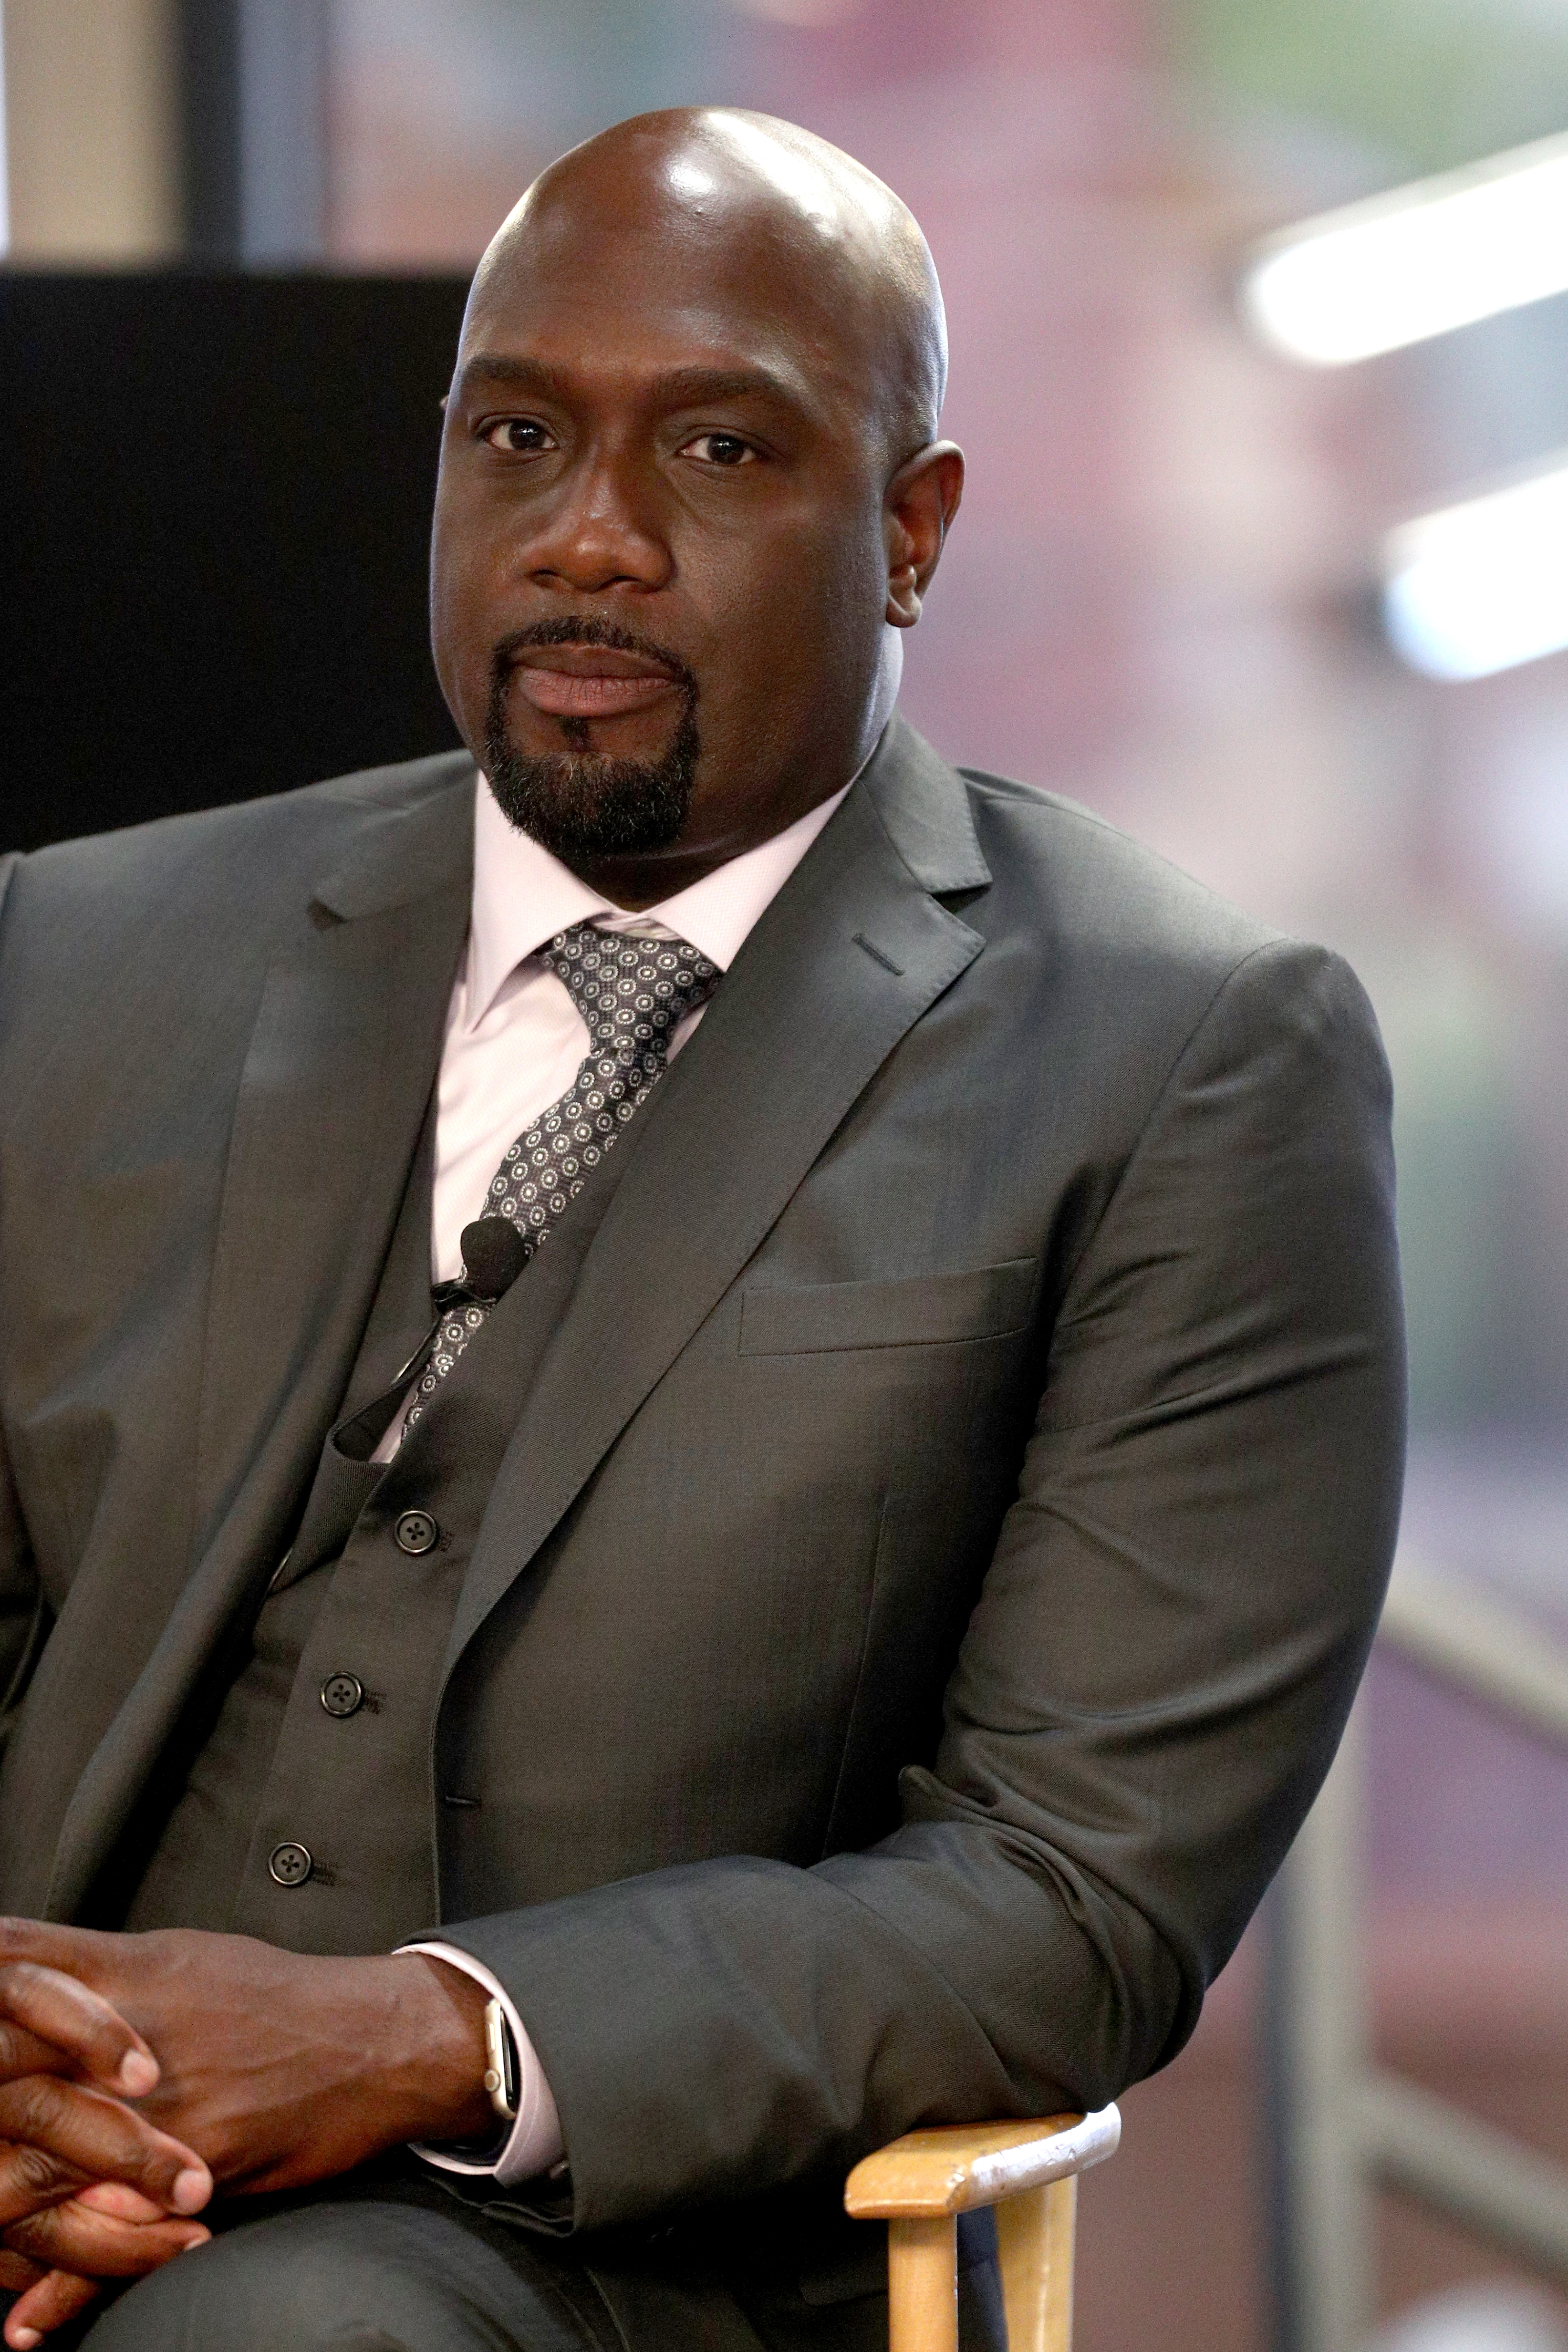 Actor Richard T. Jones of 'Wisdom of the Crowd' speaks onstage during the CBS portion of the 2017 Summer Television Critics Association Press Tour at CBS Studio Center on August 1, 2017 in Los Angeles, California.